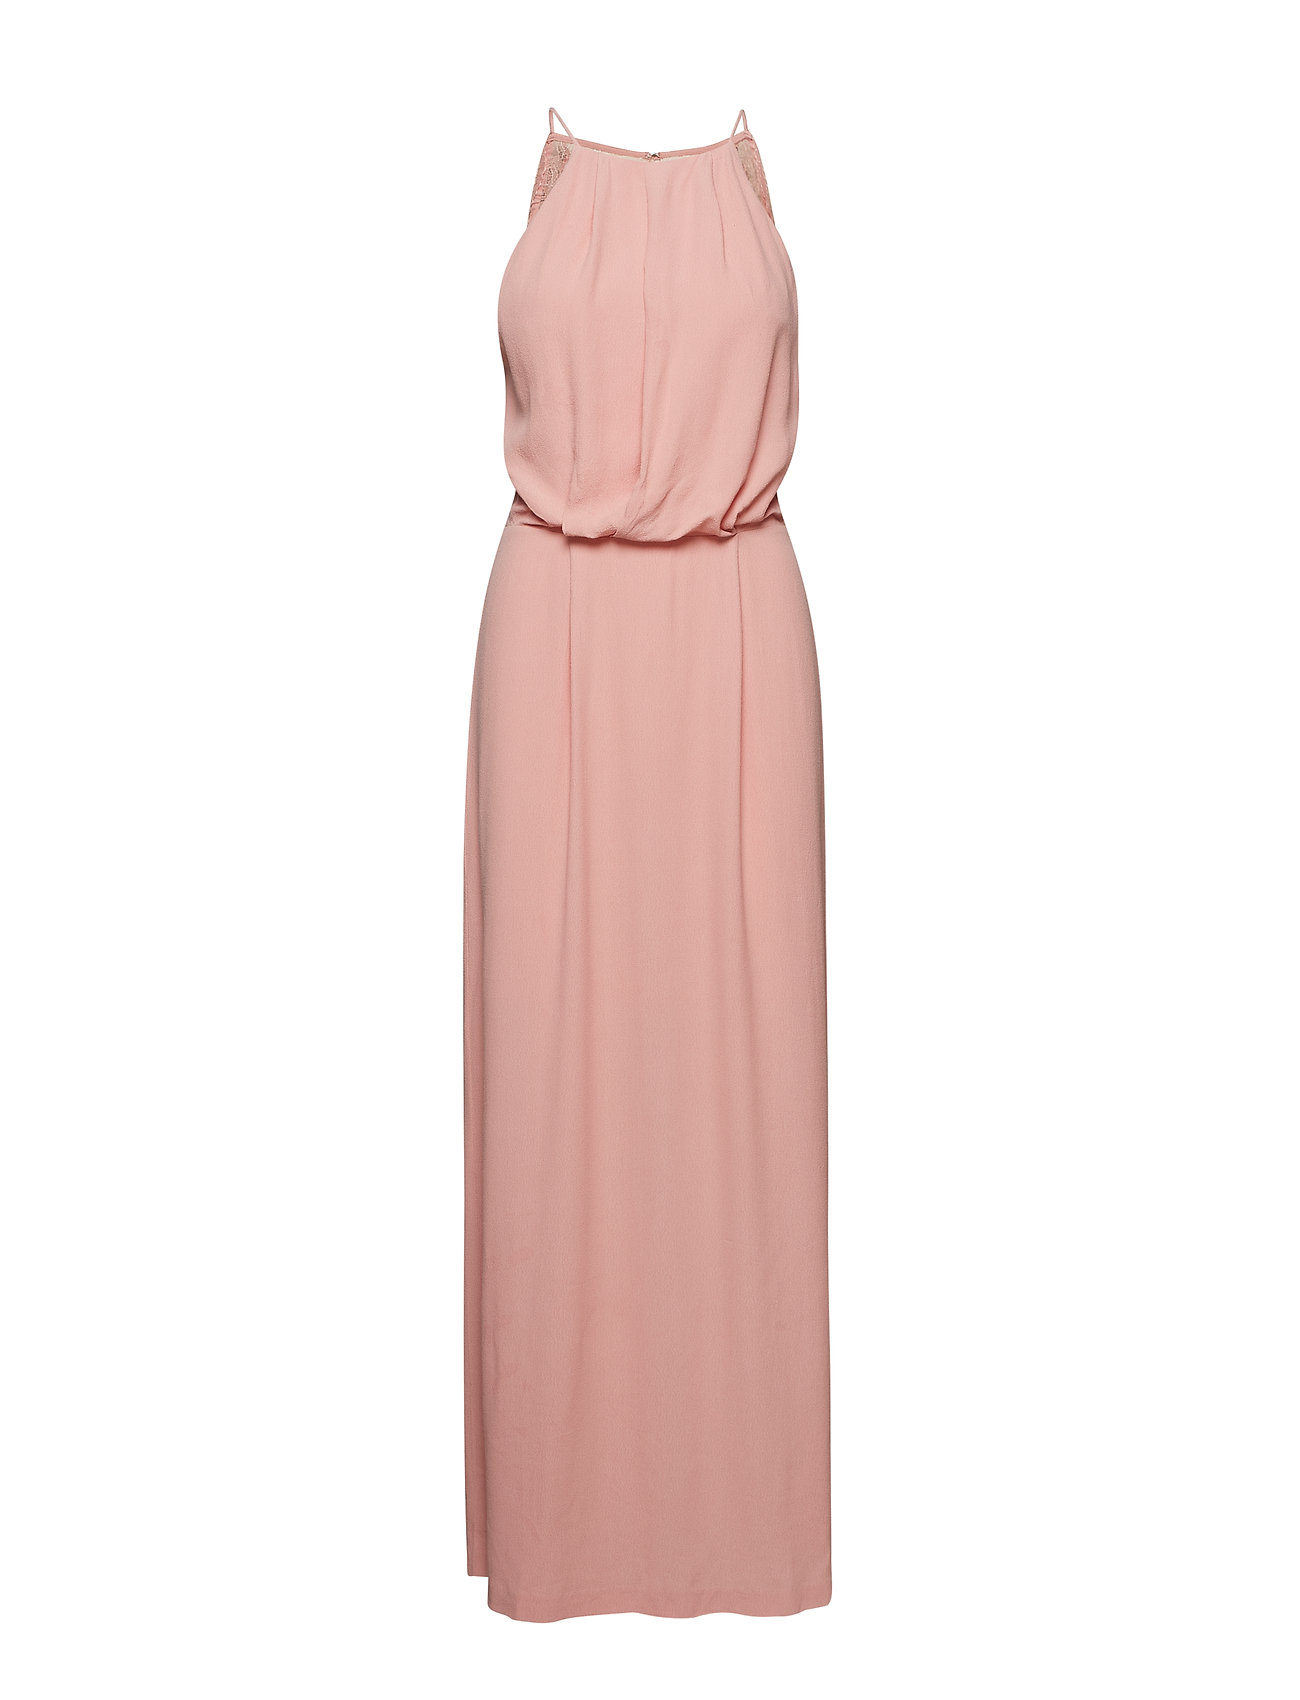 Samsøe & Samsøe Willow dress long 5687 - ROSE TAN